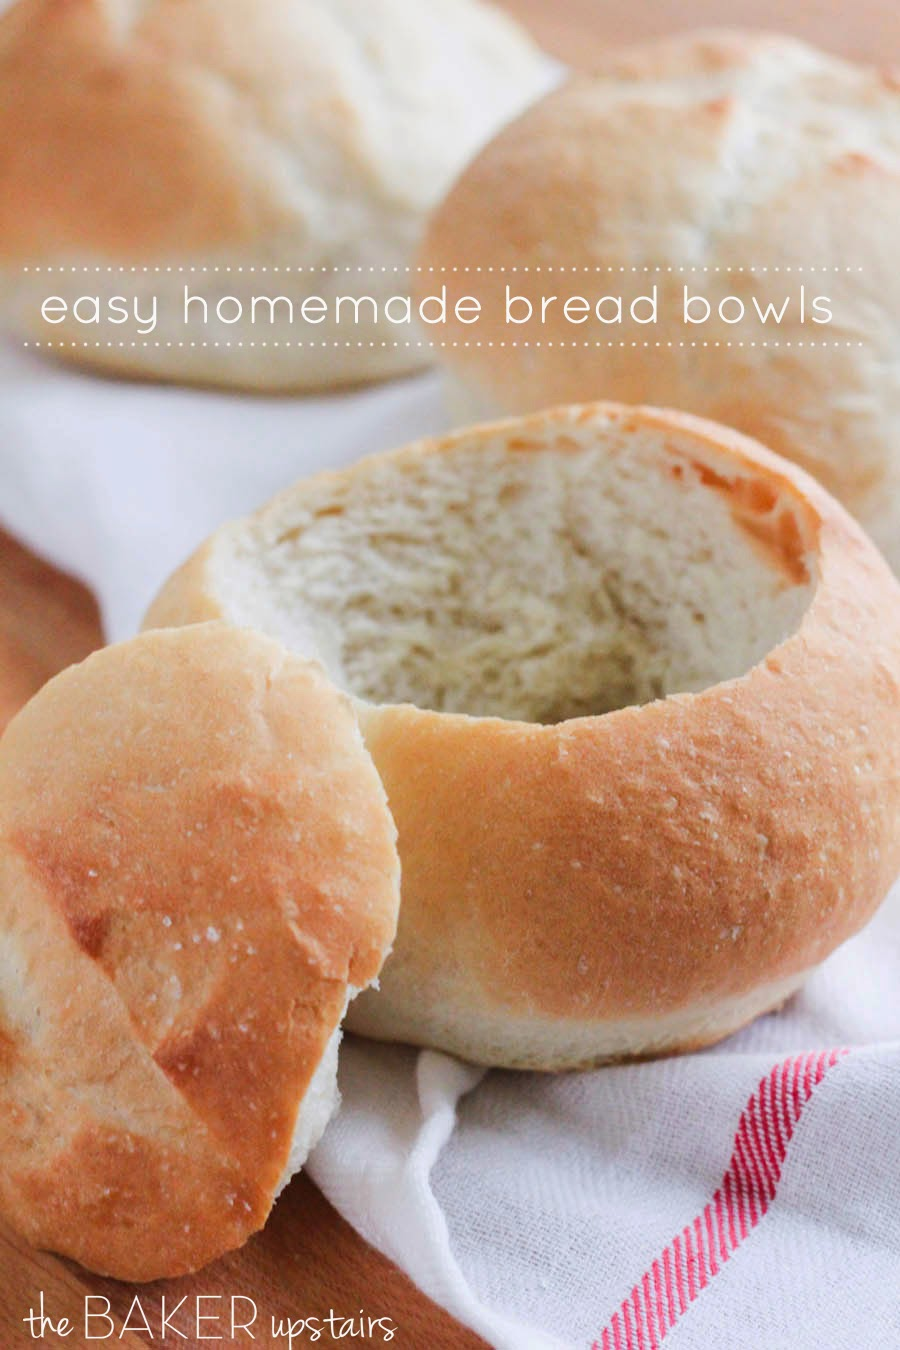 Easy homemade bread bowls from The Baker Upstairs. These delicious bread bowls are perfect for soups and dips, and are ready in about an hour!